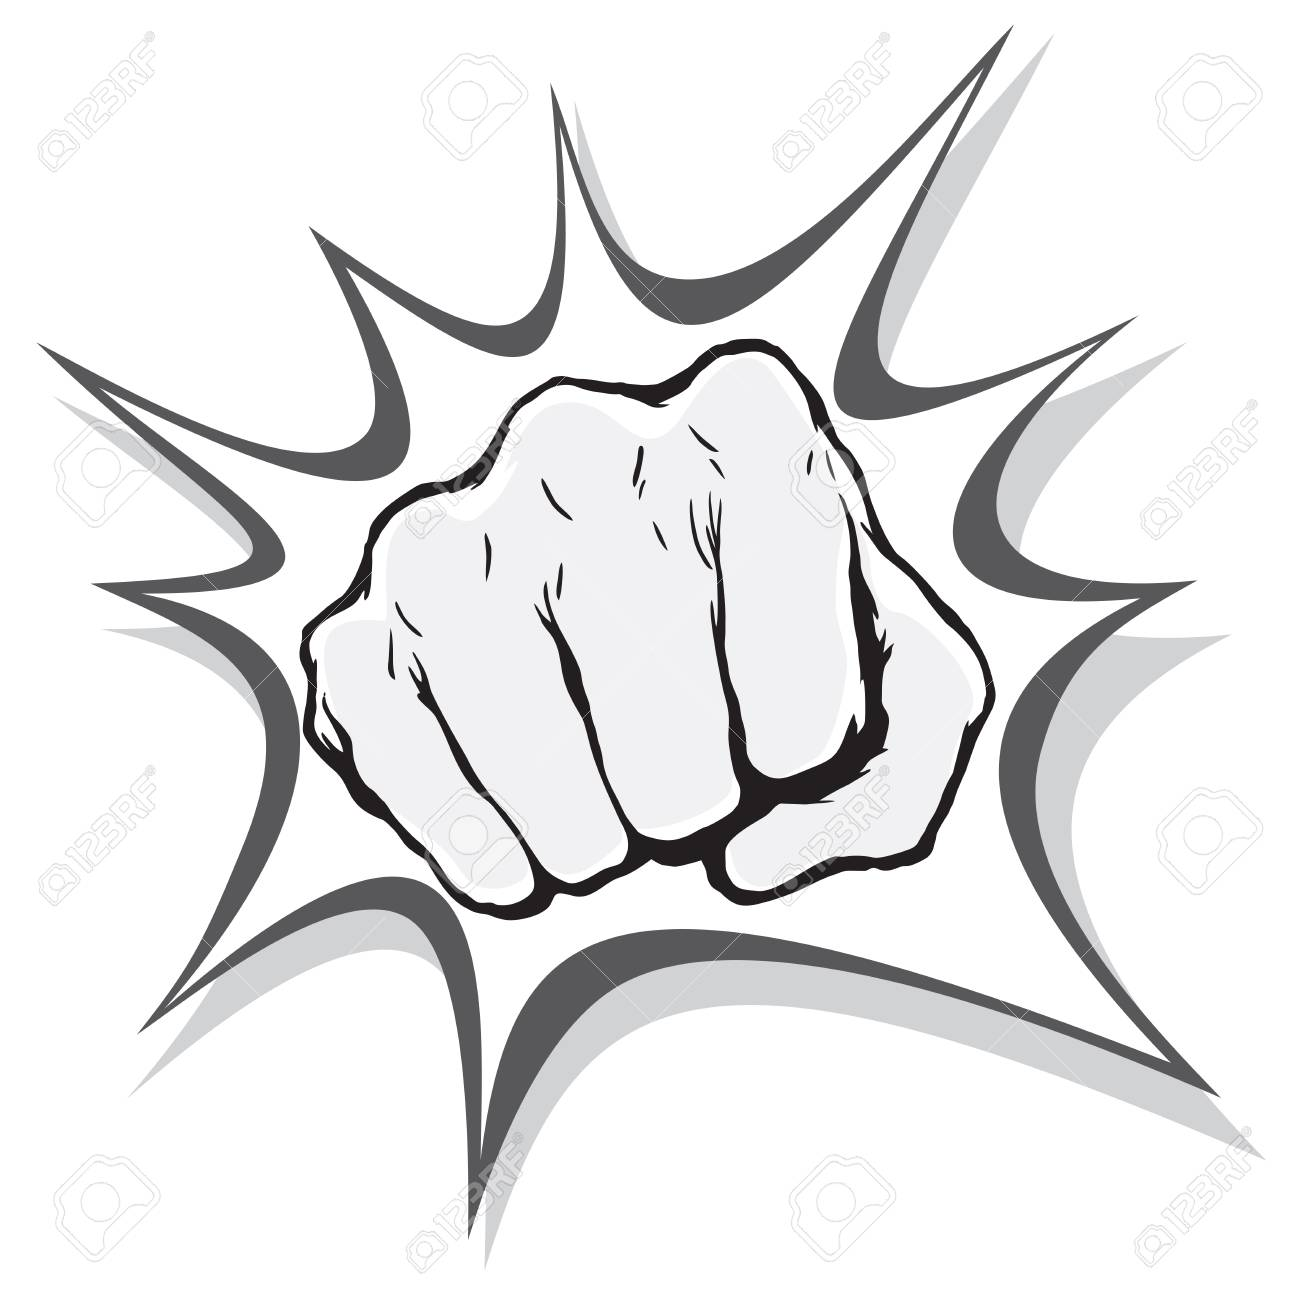 Punching Fist Hand Vector Royalty Free Cliparts Vectors And Stock Illustration Image 111437521